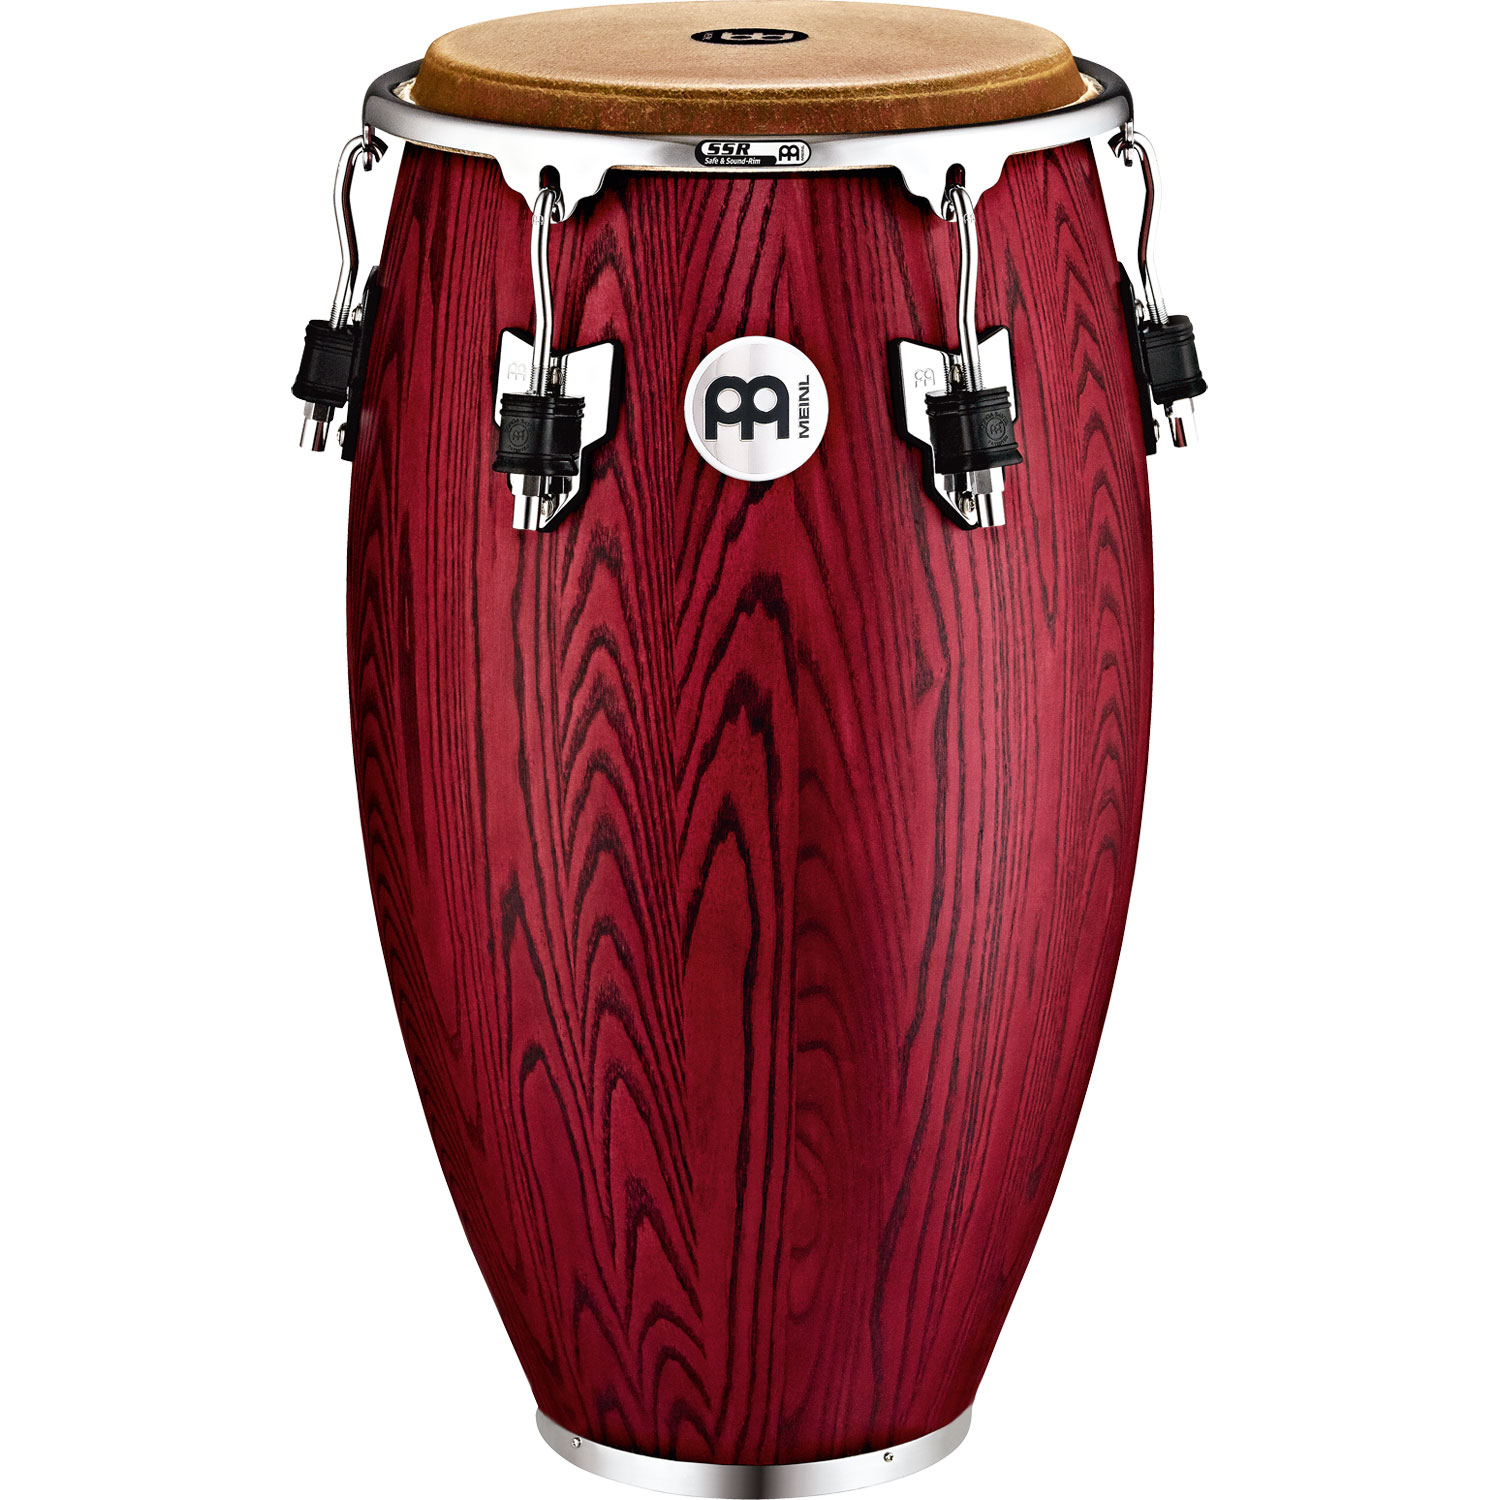 "Meinl 12.5"" Woodcraft Series Tumba Conga in Vintage Red"